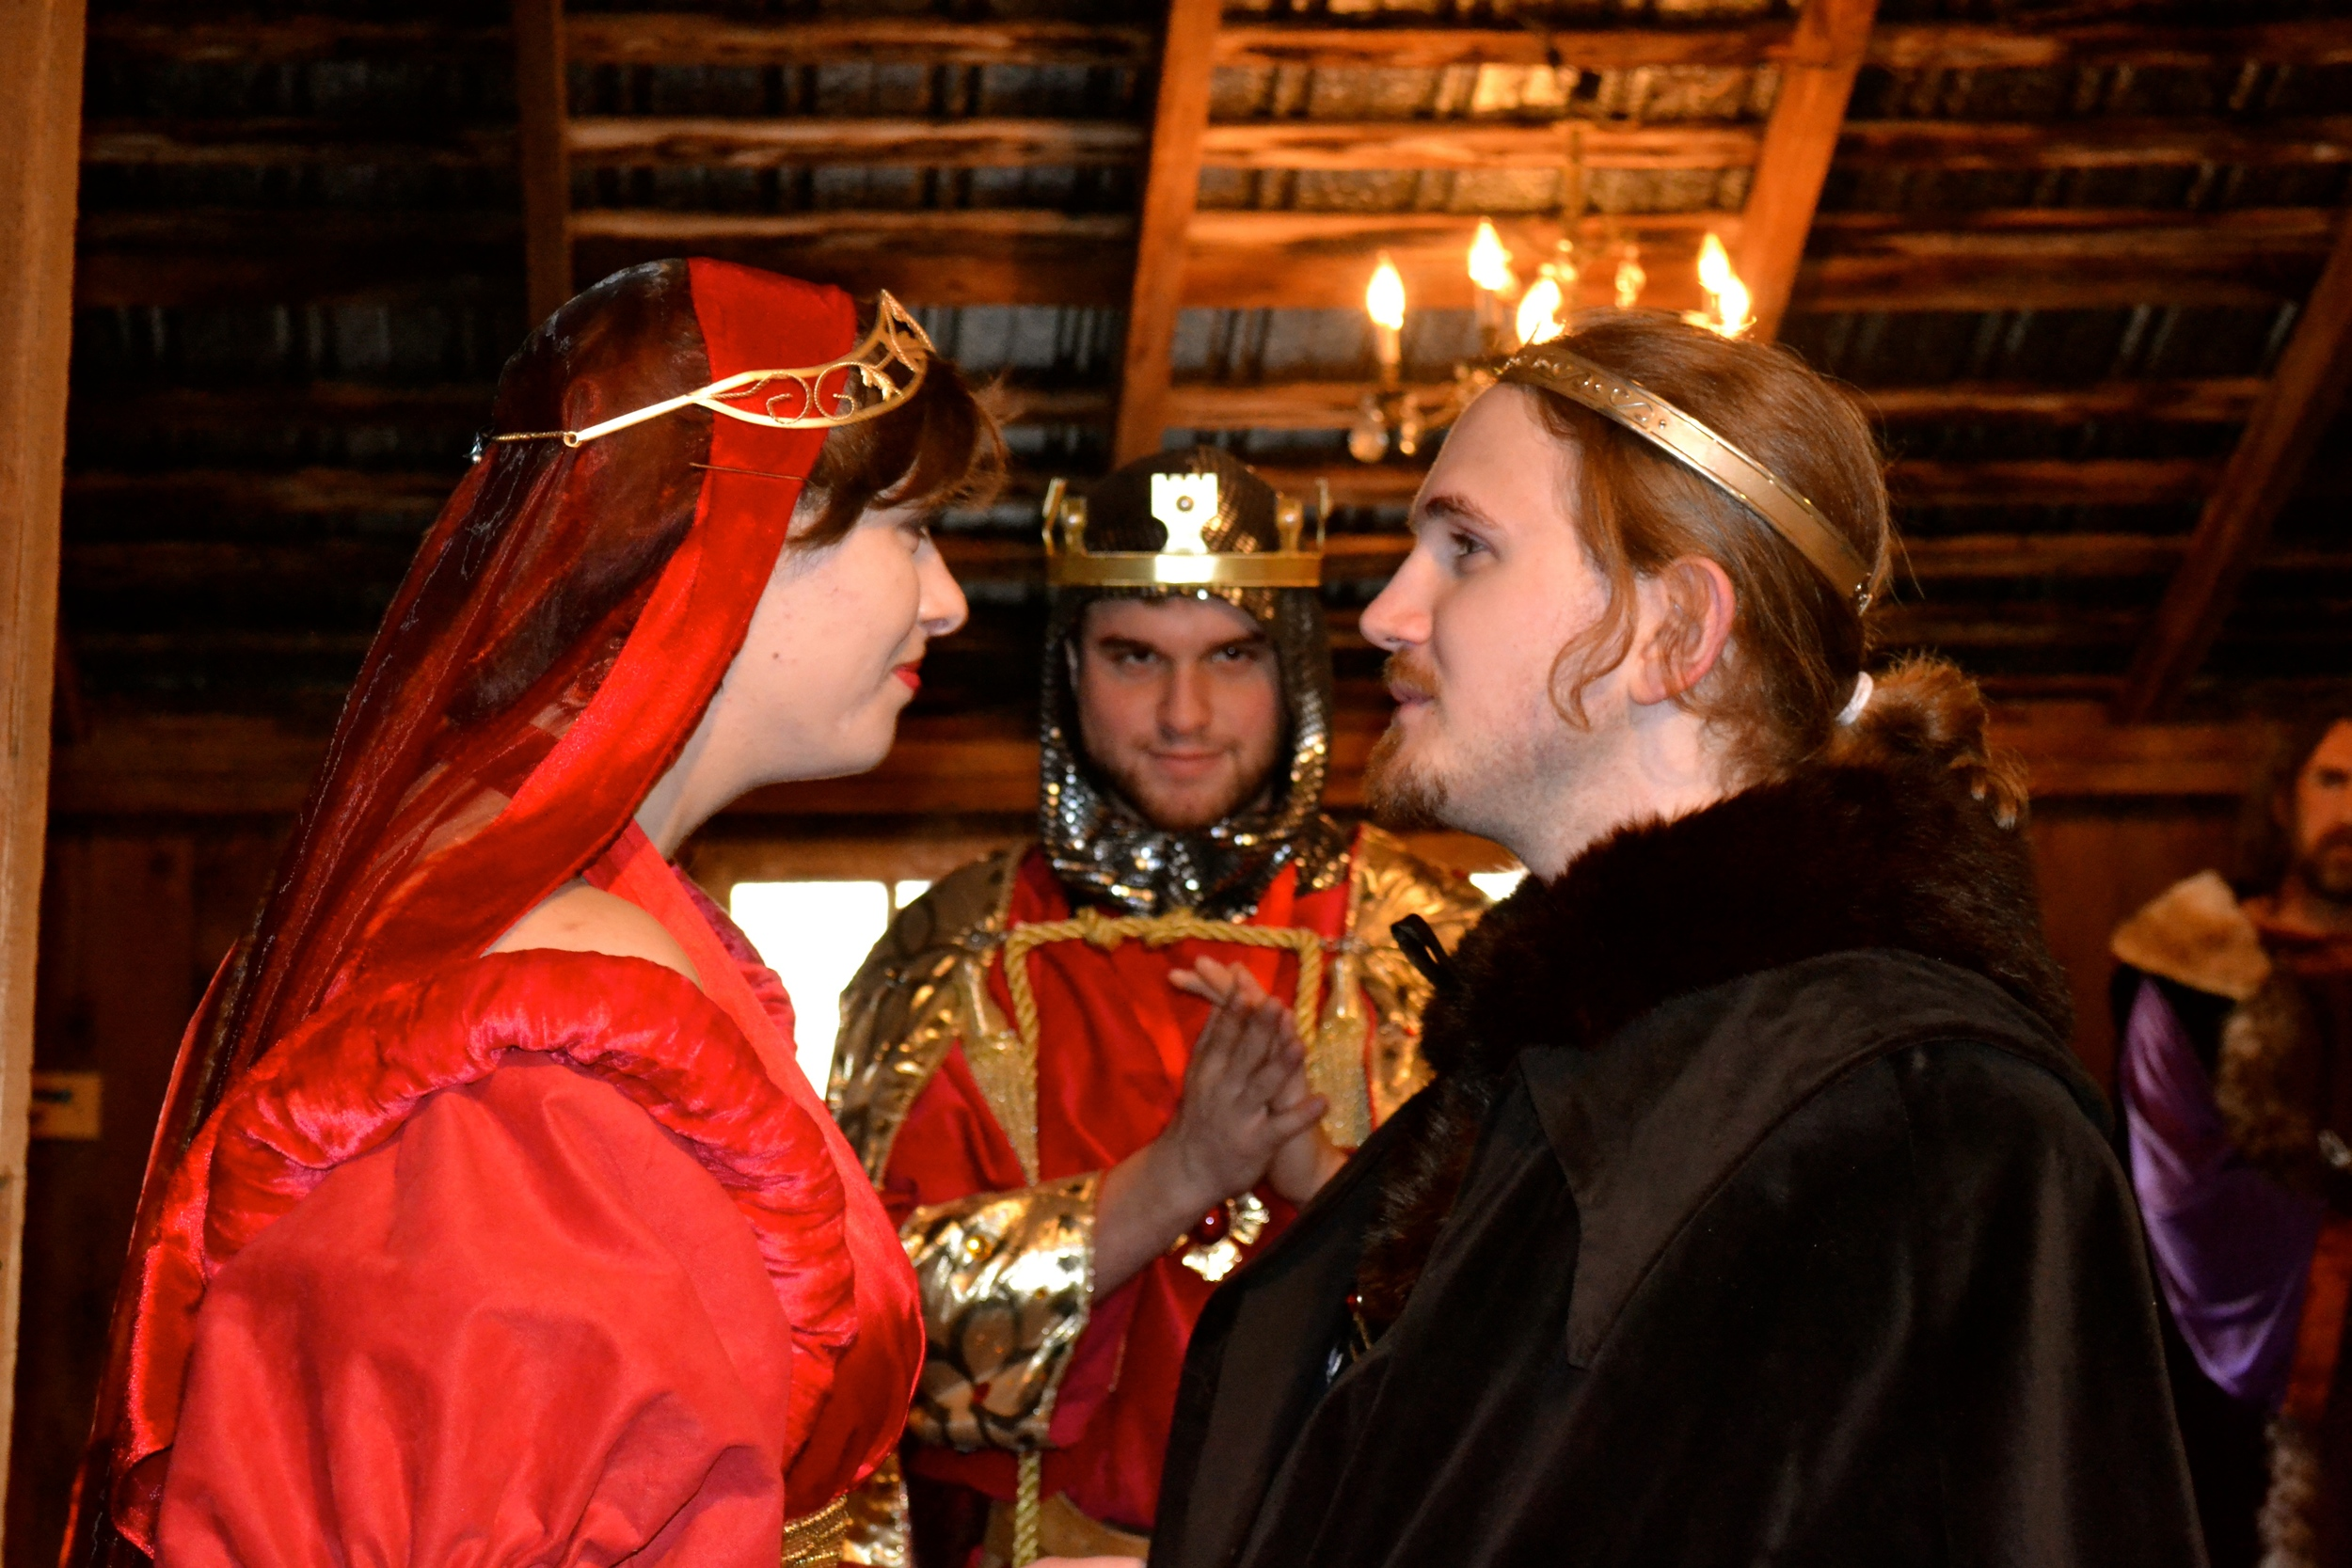 Zoey Selack as Lady Blanche along with the Prince Dauphin (Jamin Miller) as KING JOHN (RYAN SZWAJA)looks on.